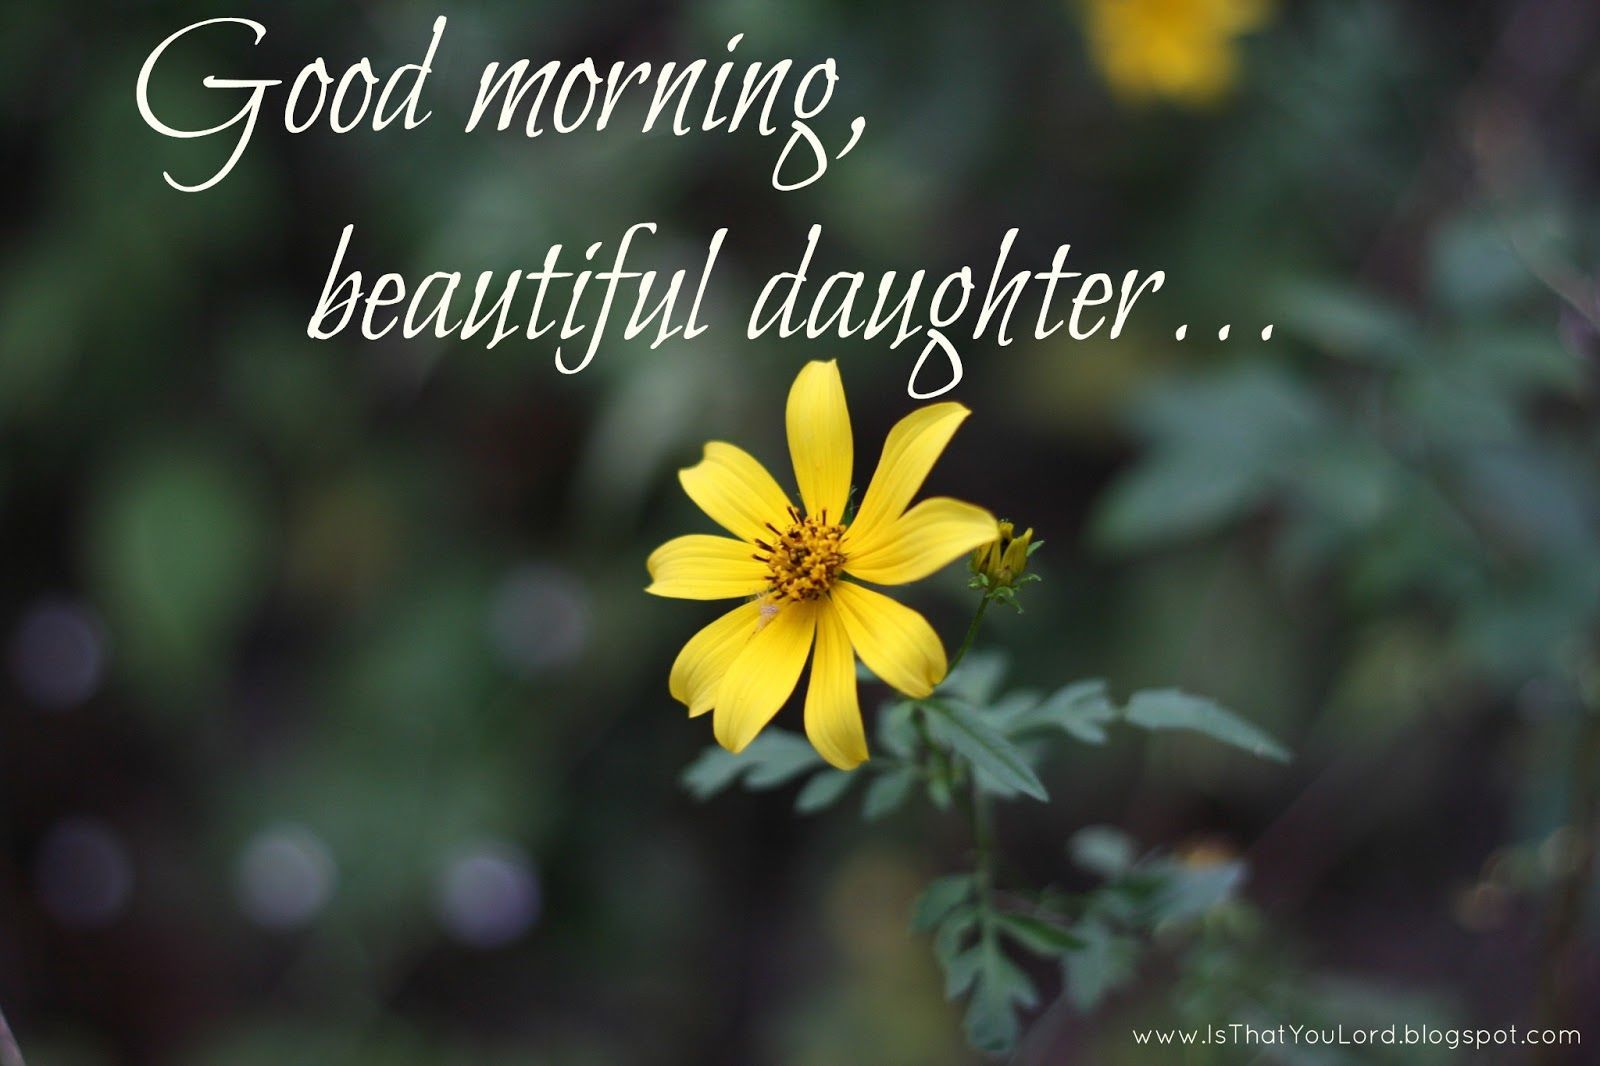 You Are Beautiful Inside And Out Remember That Love You Good Morning Daughter Good Morning Beautiful Good Morning Images